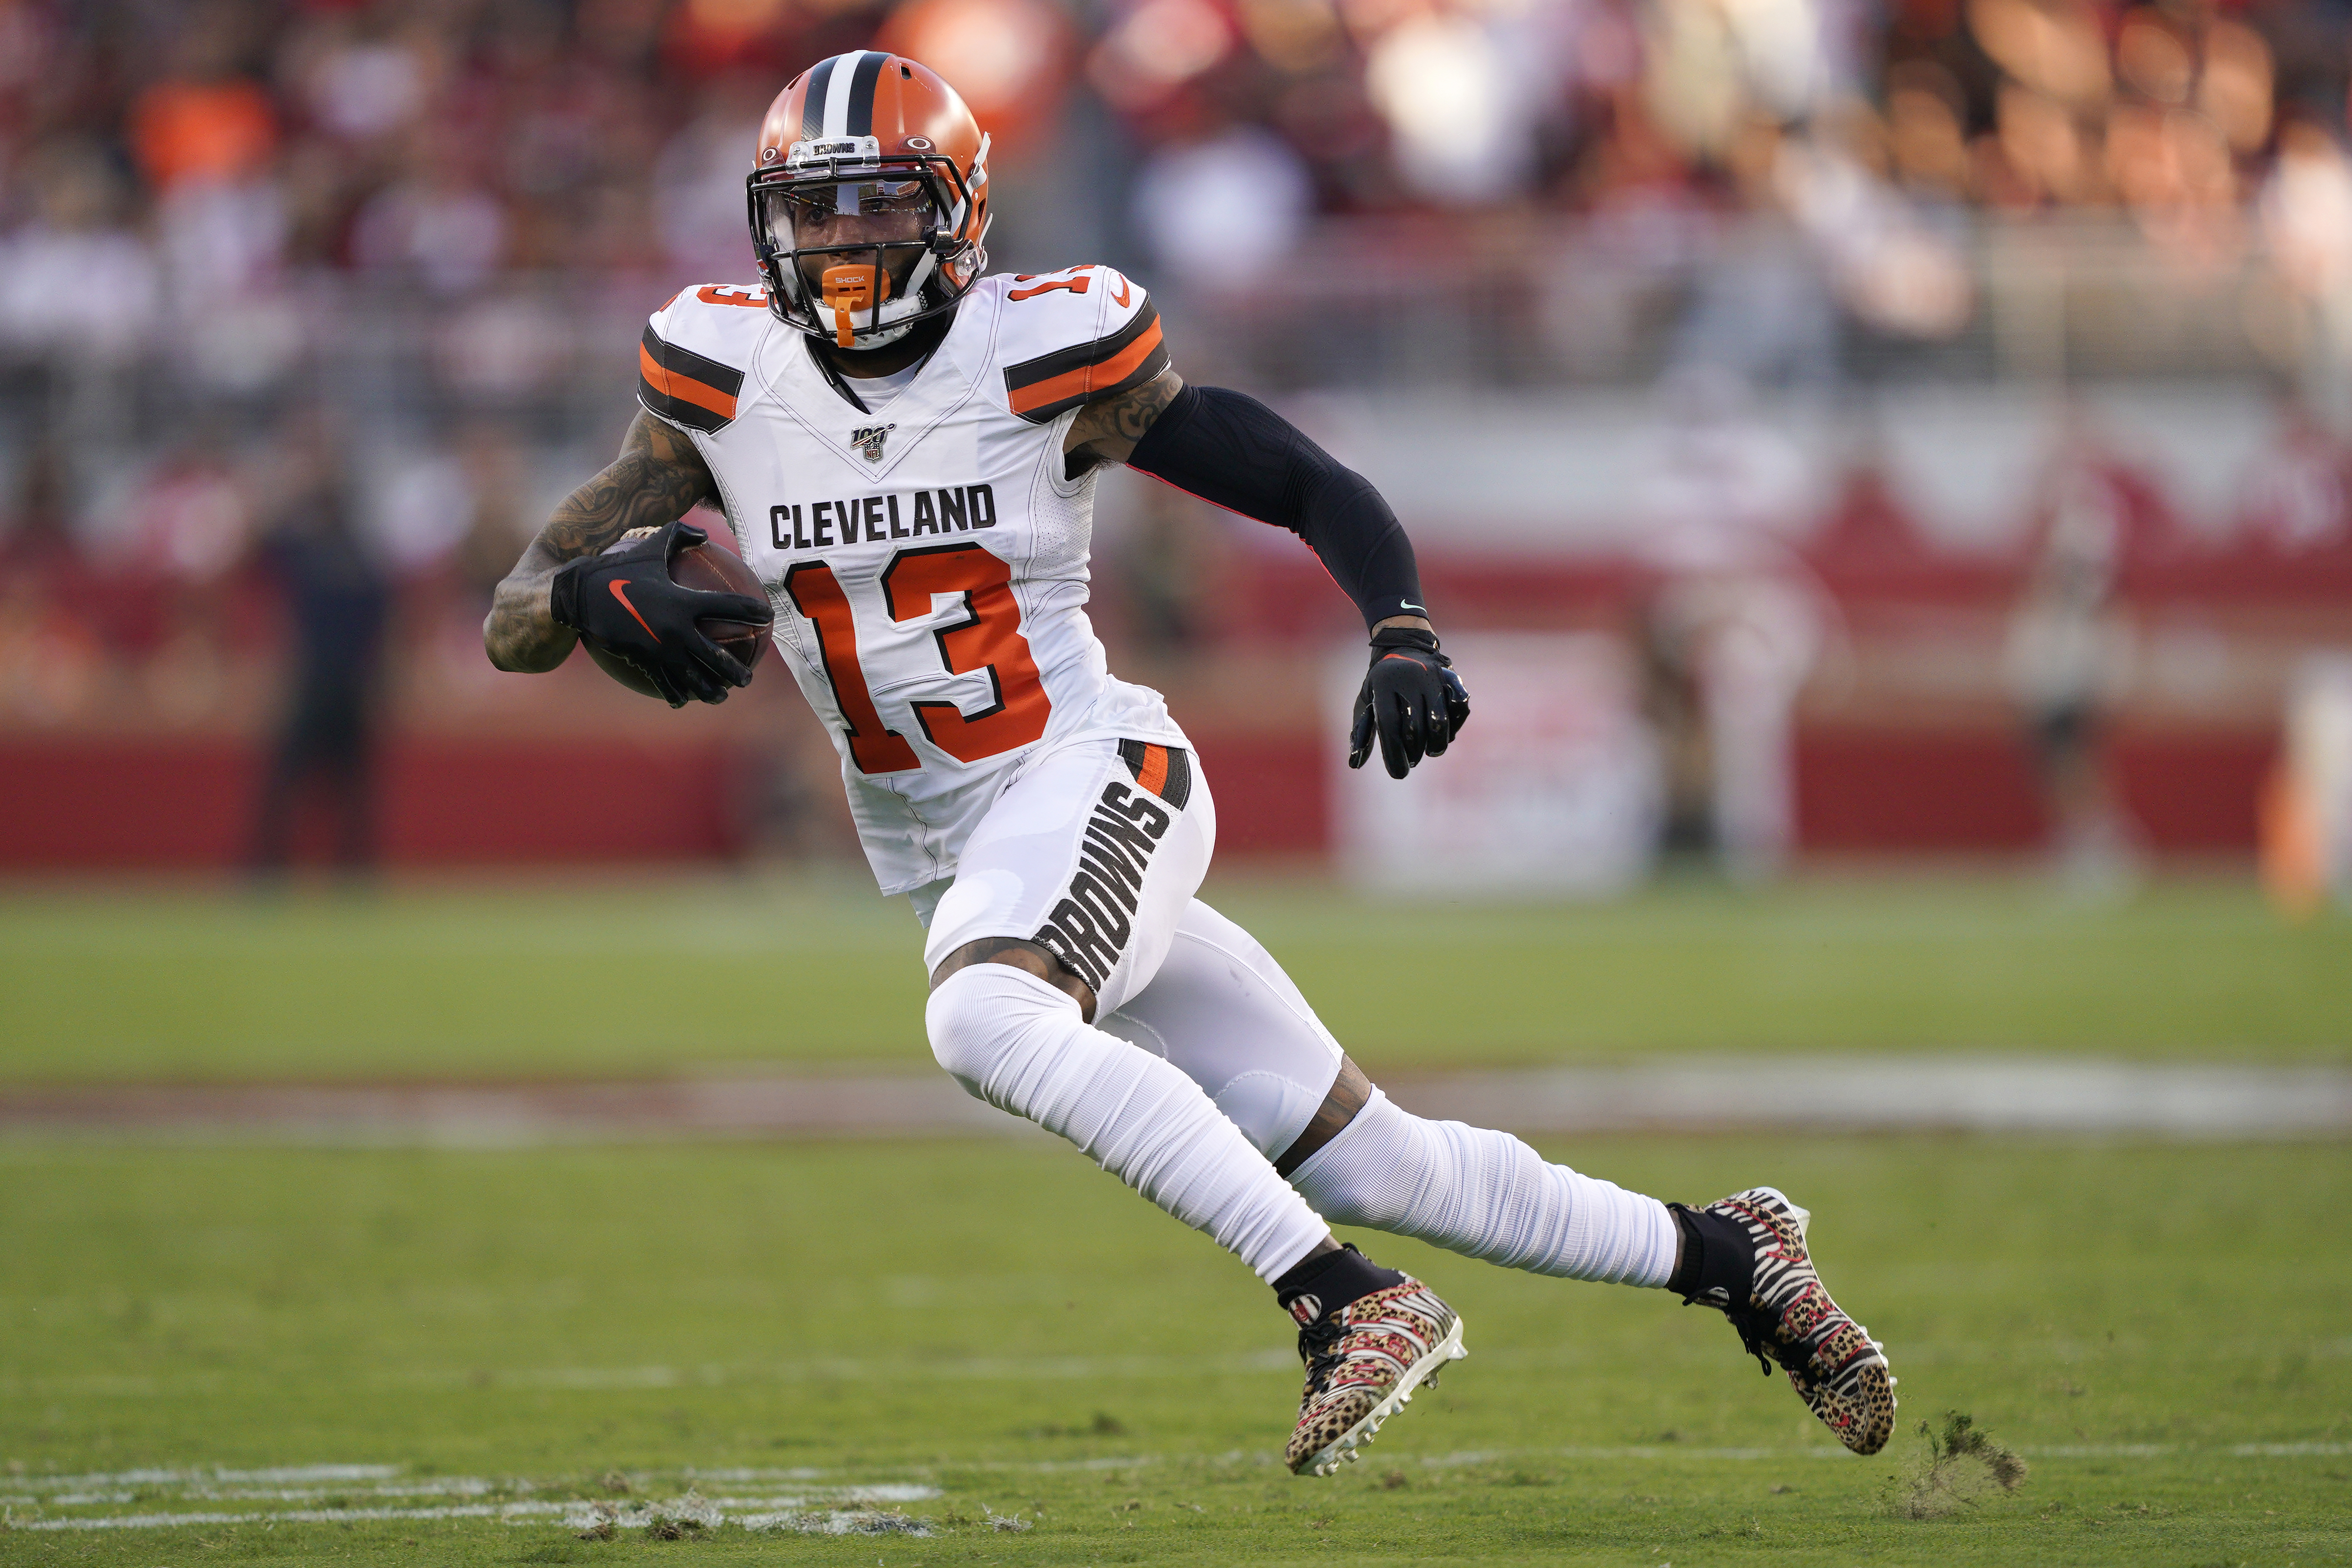 Force feeding: Landry says Browns must get ball to Beckham